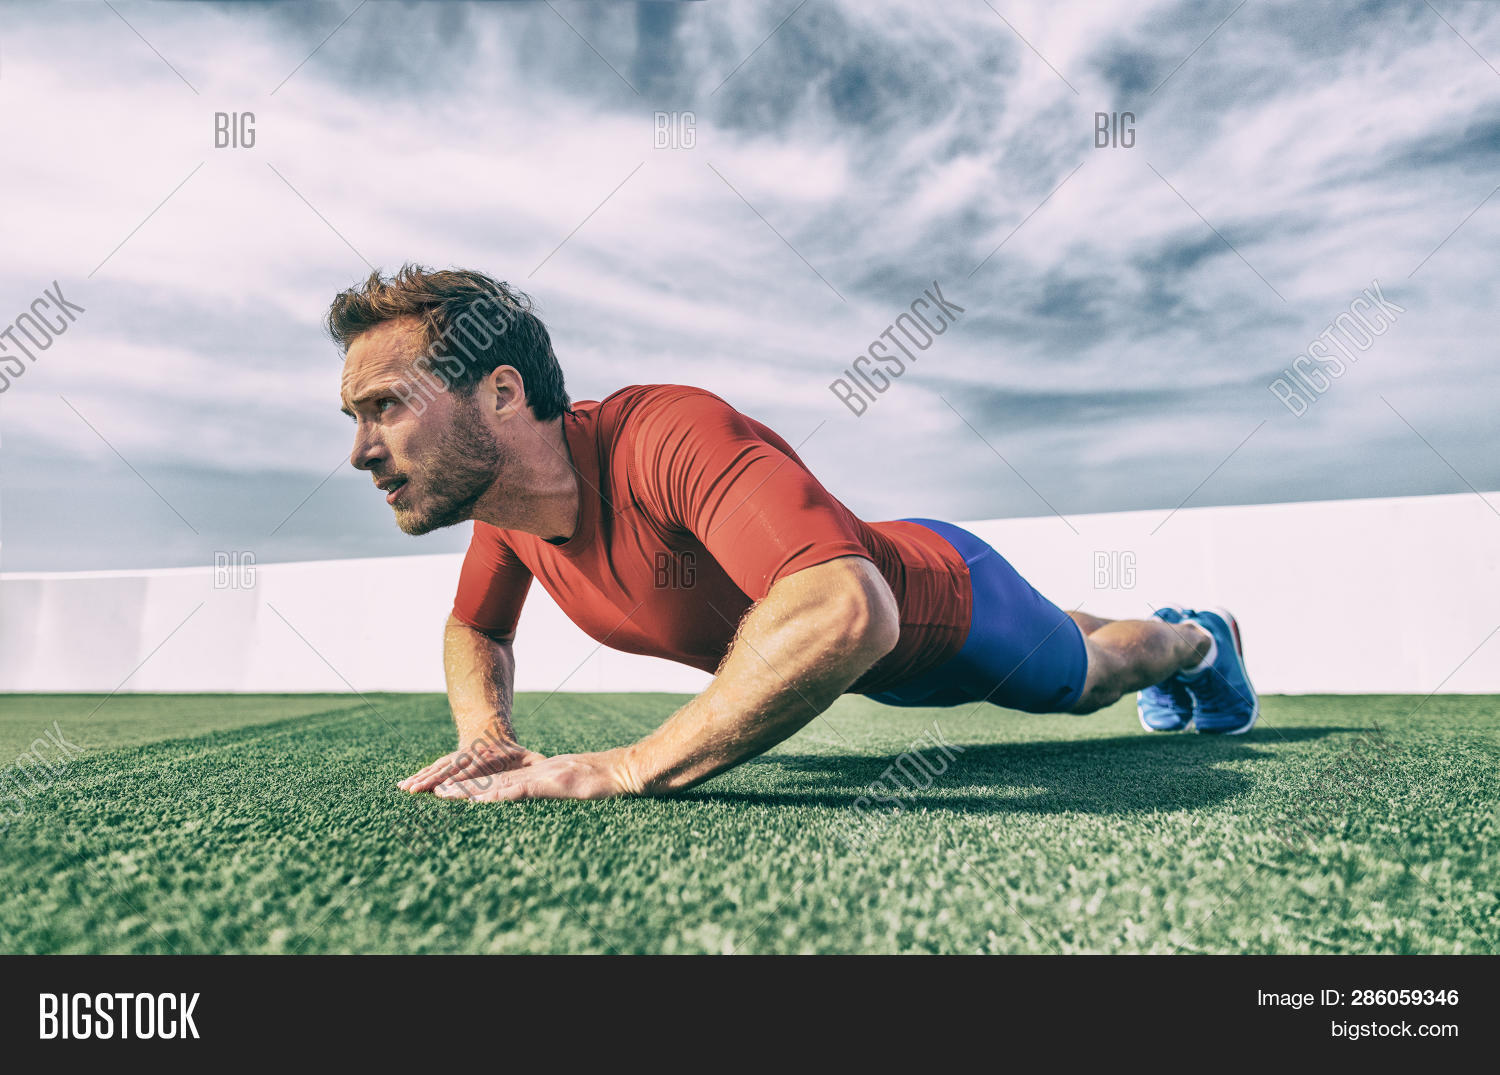 active,arms,athlete,biceps,body,bodybuilding,bodyweight,calisthenic,chest,core,exercise,exercising,fit,fitness,floor,grass,gym,healthy,home,lifestyle,male,man,men,muscles,outdoor,outdoors,outside,park,people,person,plank,planking,plyometrics,push,push-ups,pushup,shoulders,sport,strength,strong,summer,training,up,ups,variation,working out,workout,yoga